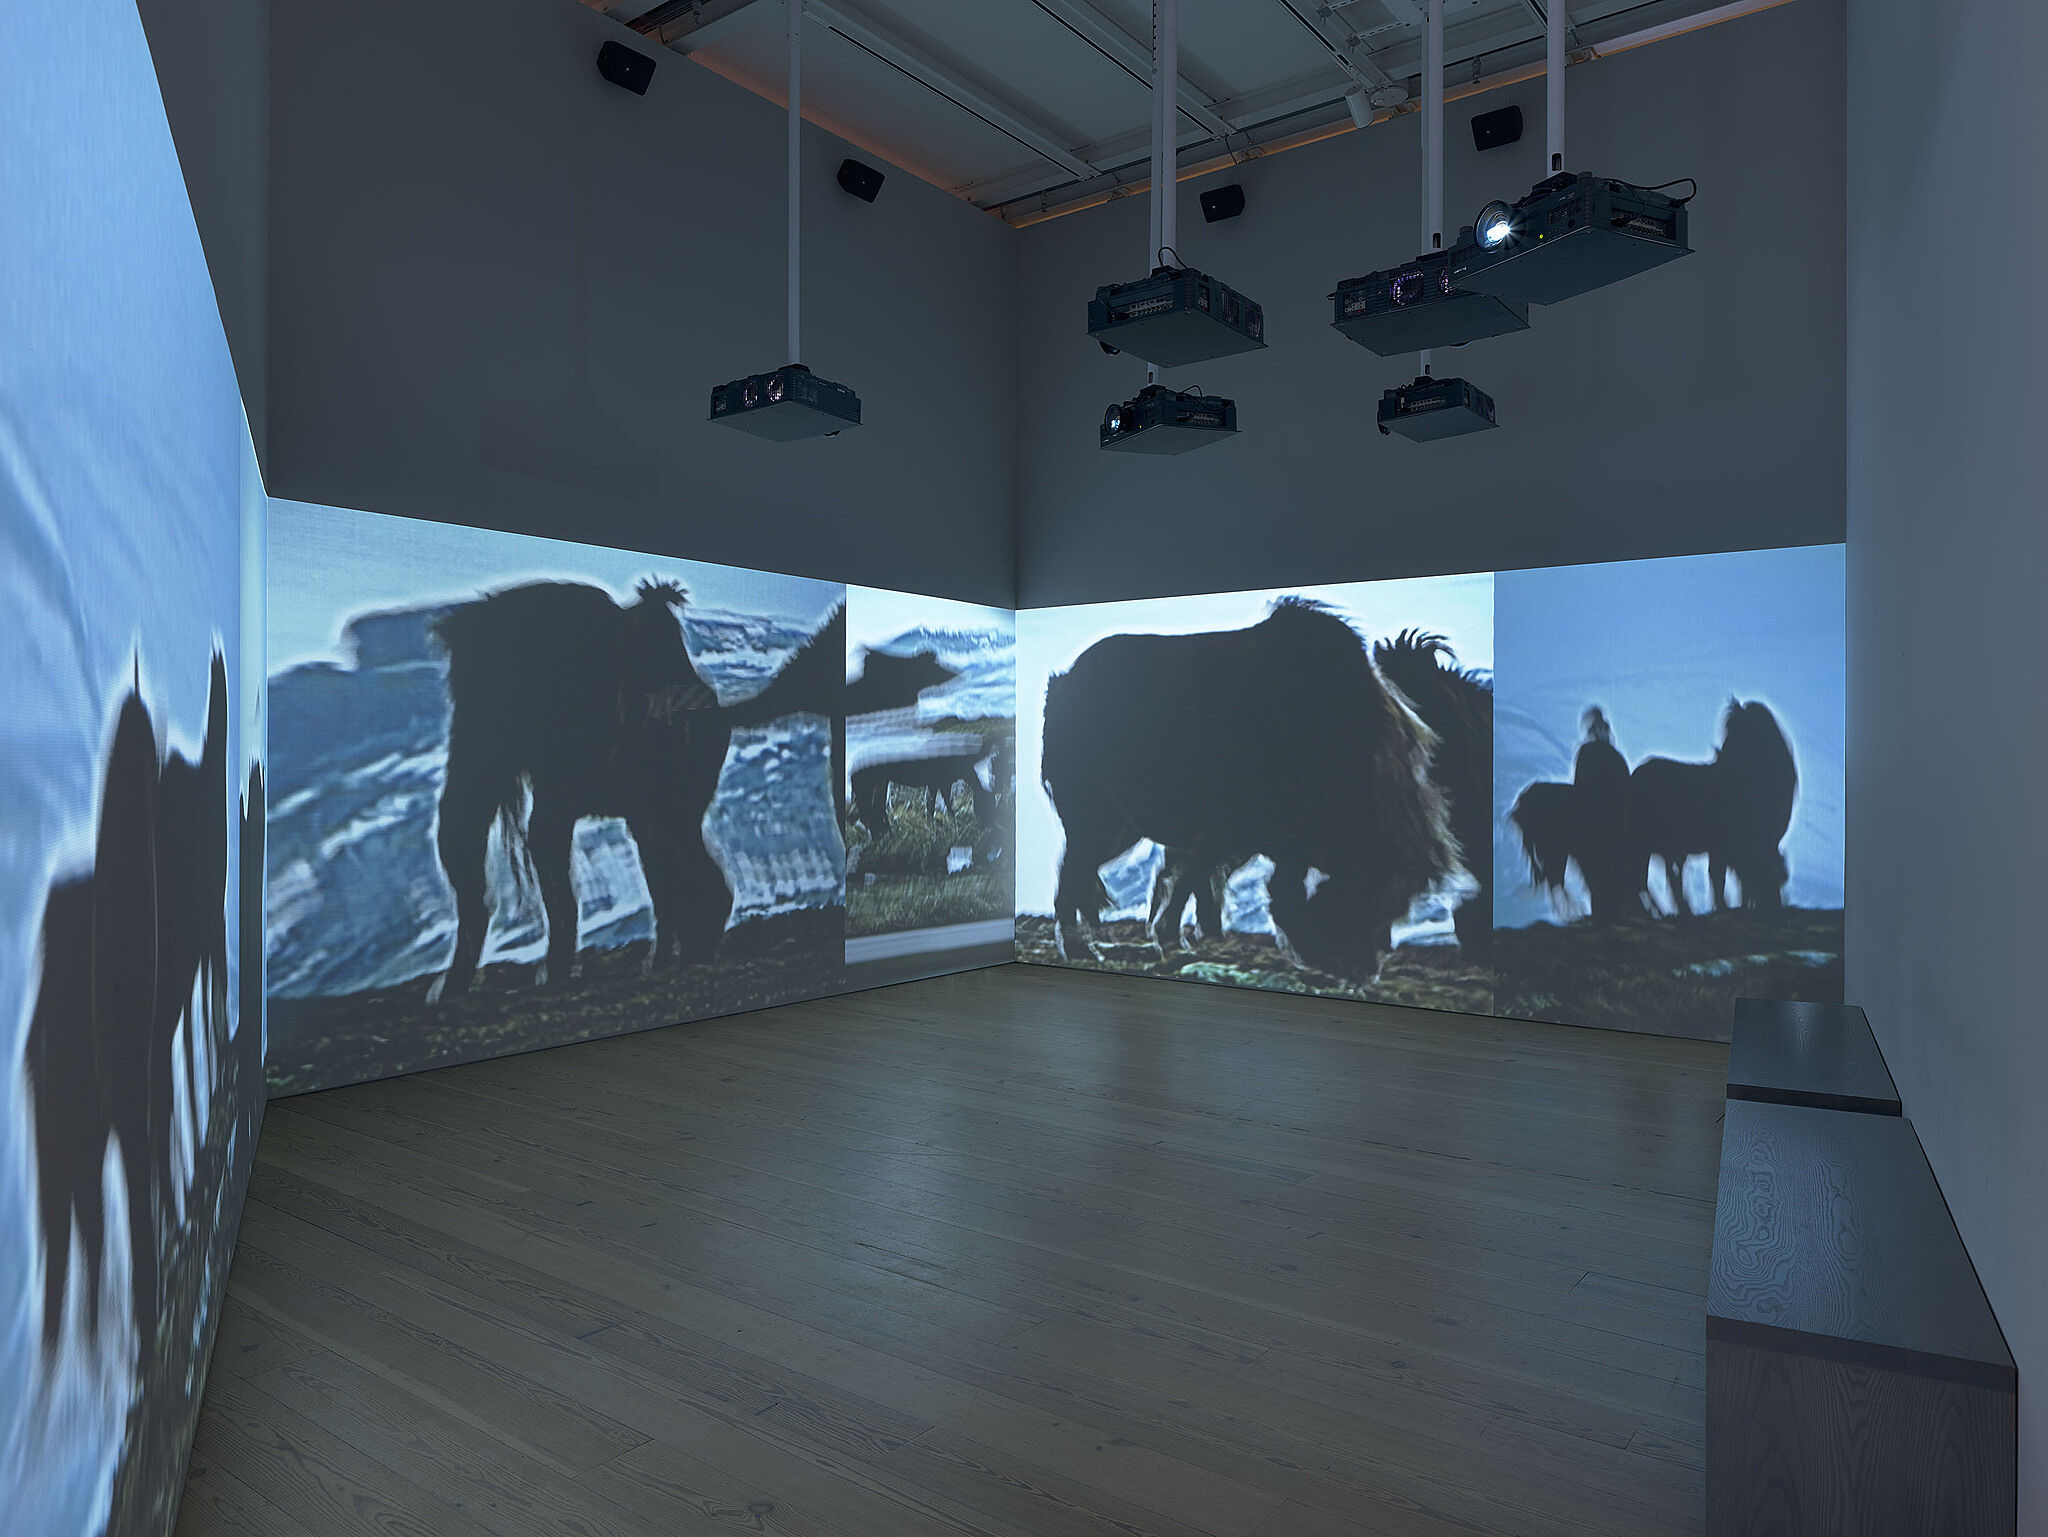 A photo of the Whitney galleries with various movie projections on the walls.